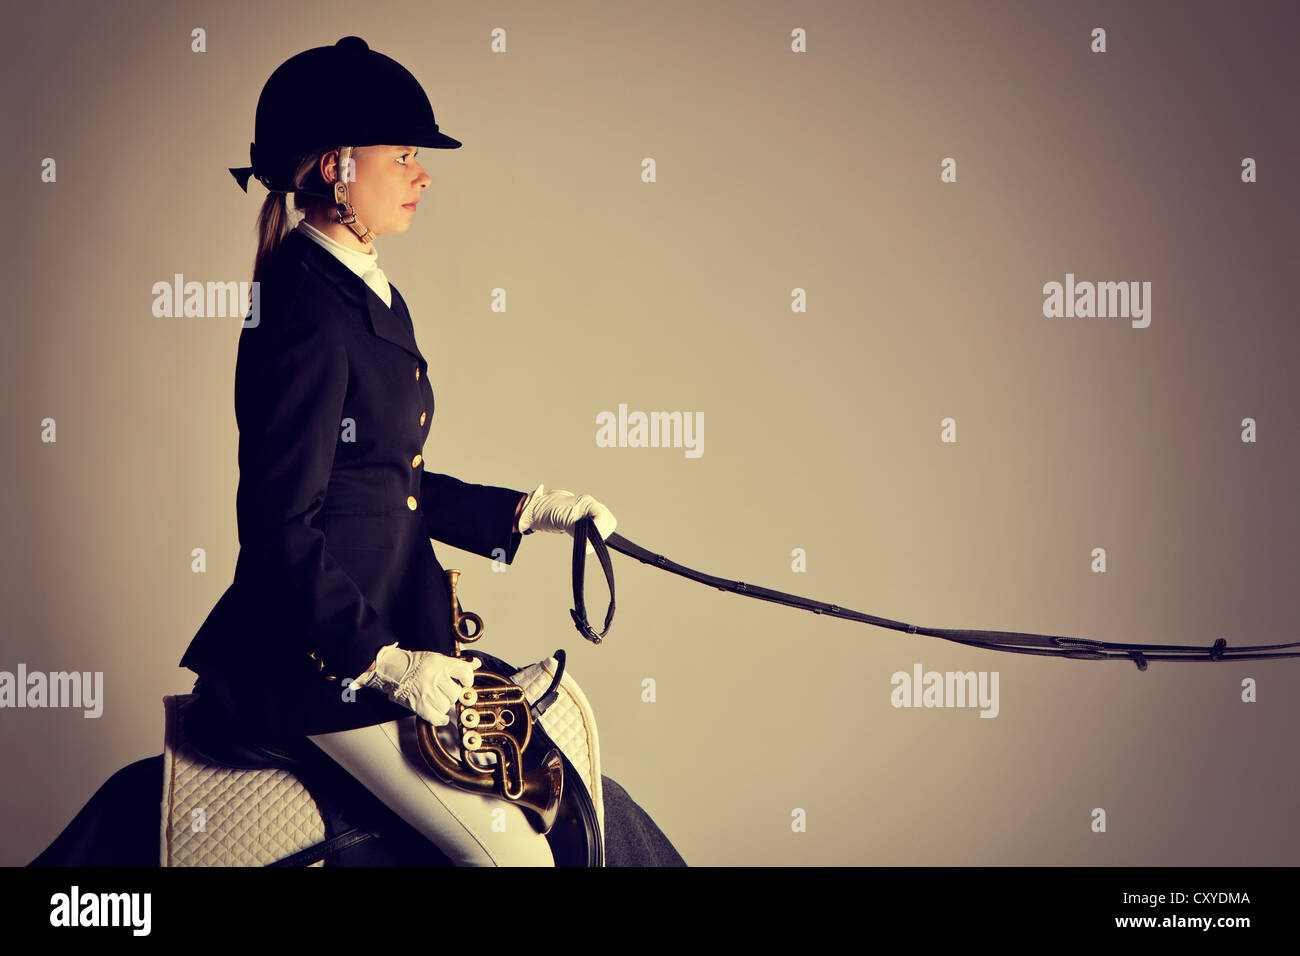 Female rider without a horse holding a posthorn - Stock Image